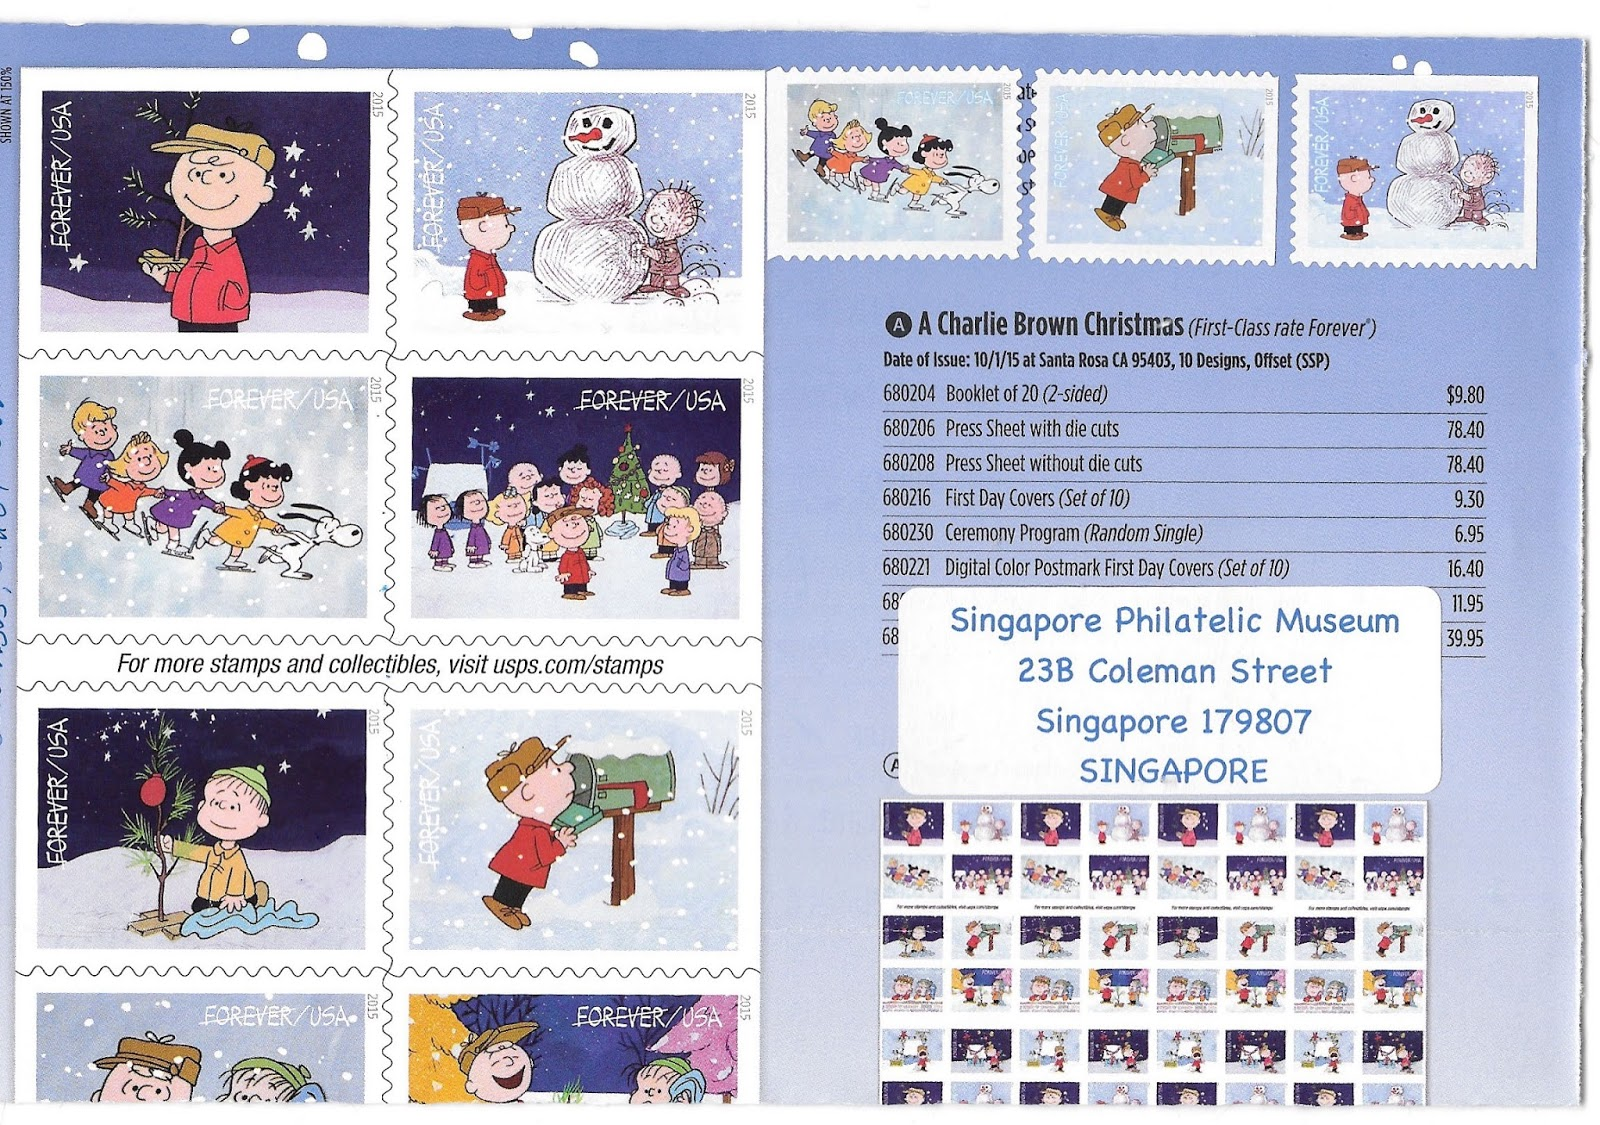 envelope 100: Cartoon characters for Sunday Stamps